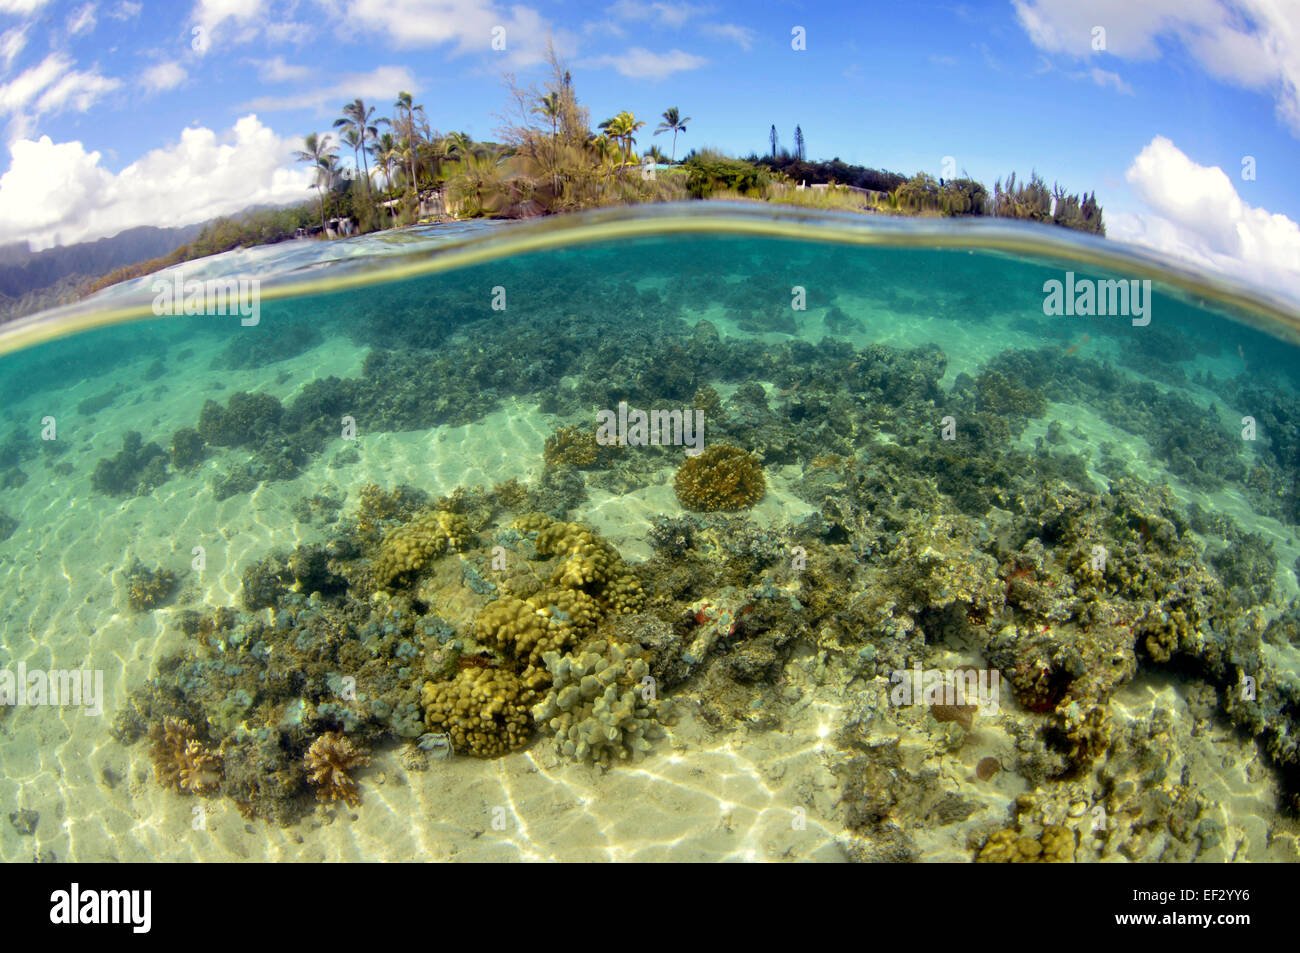 Coconut Island, Kaneohe Bay, Oahu, Hawaii, USA - Stock Image